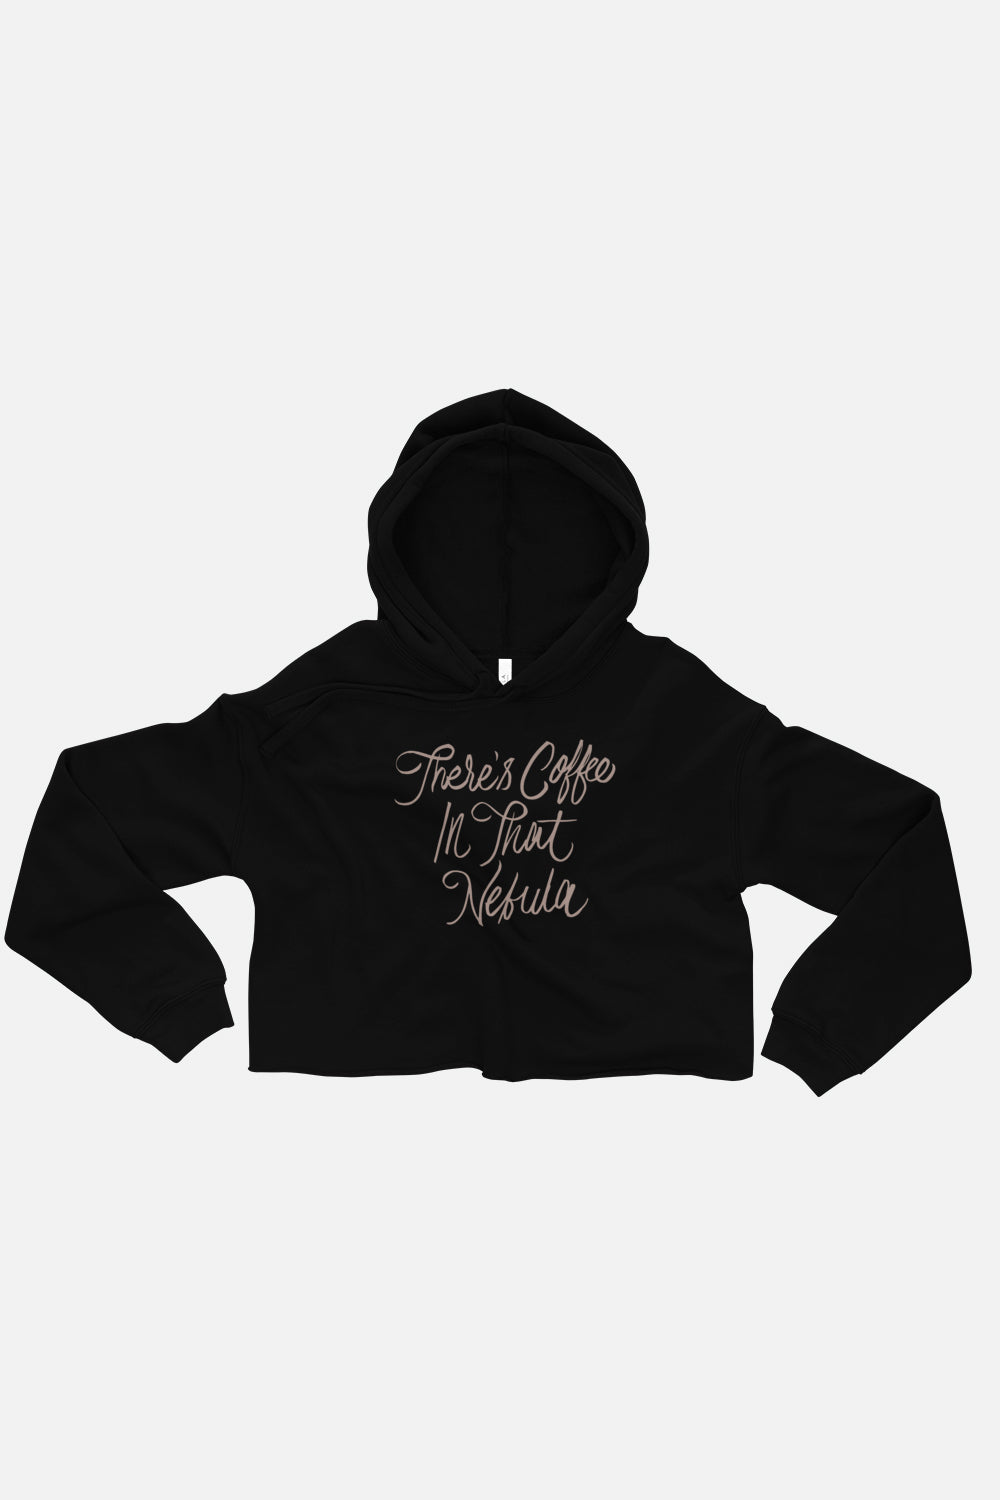 There's Coffee in that Nebula Fitted Crop Hoodie